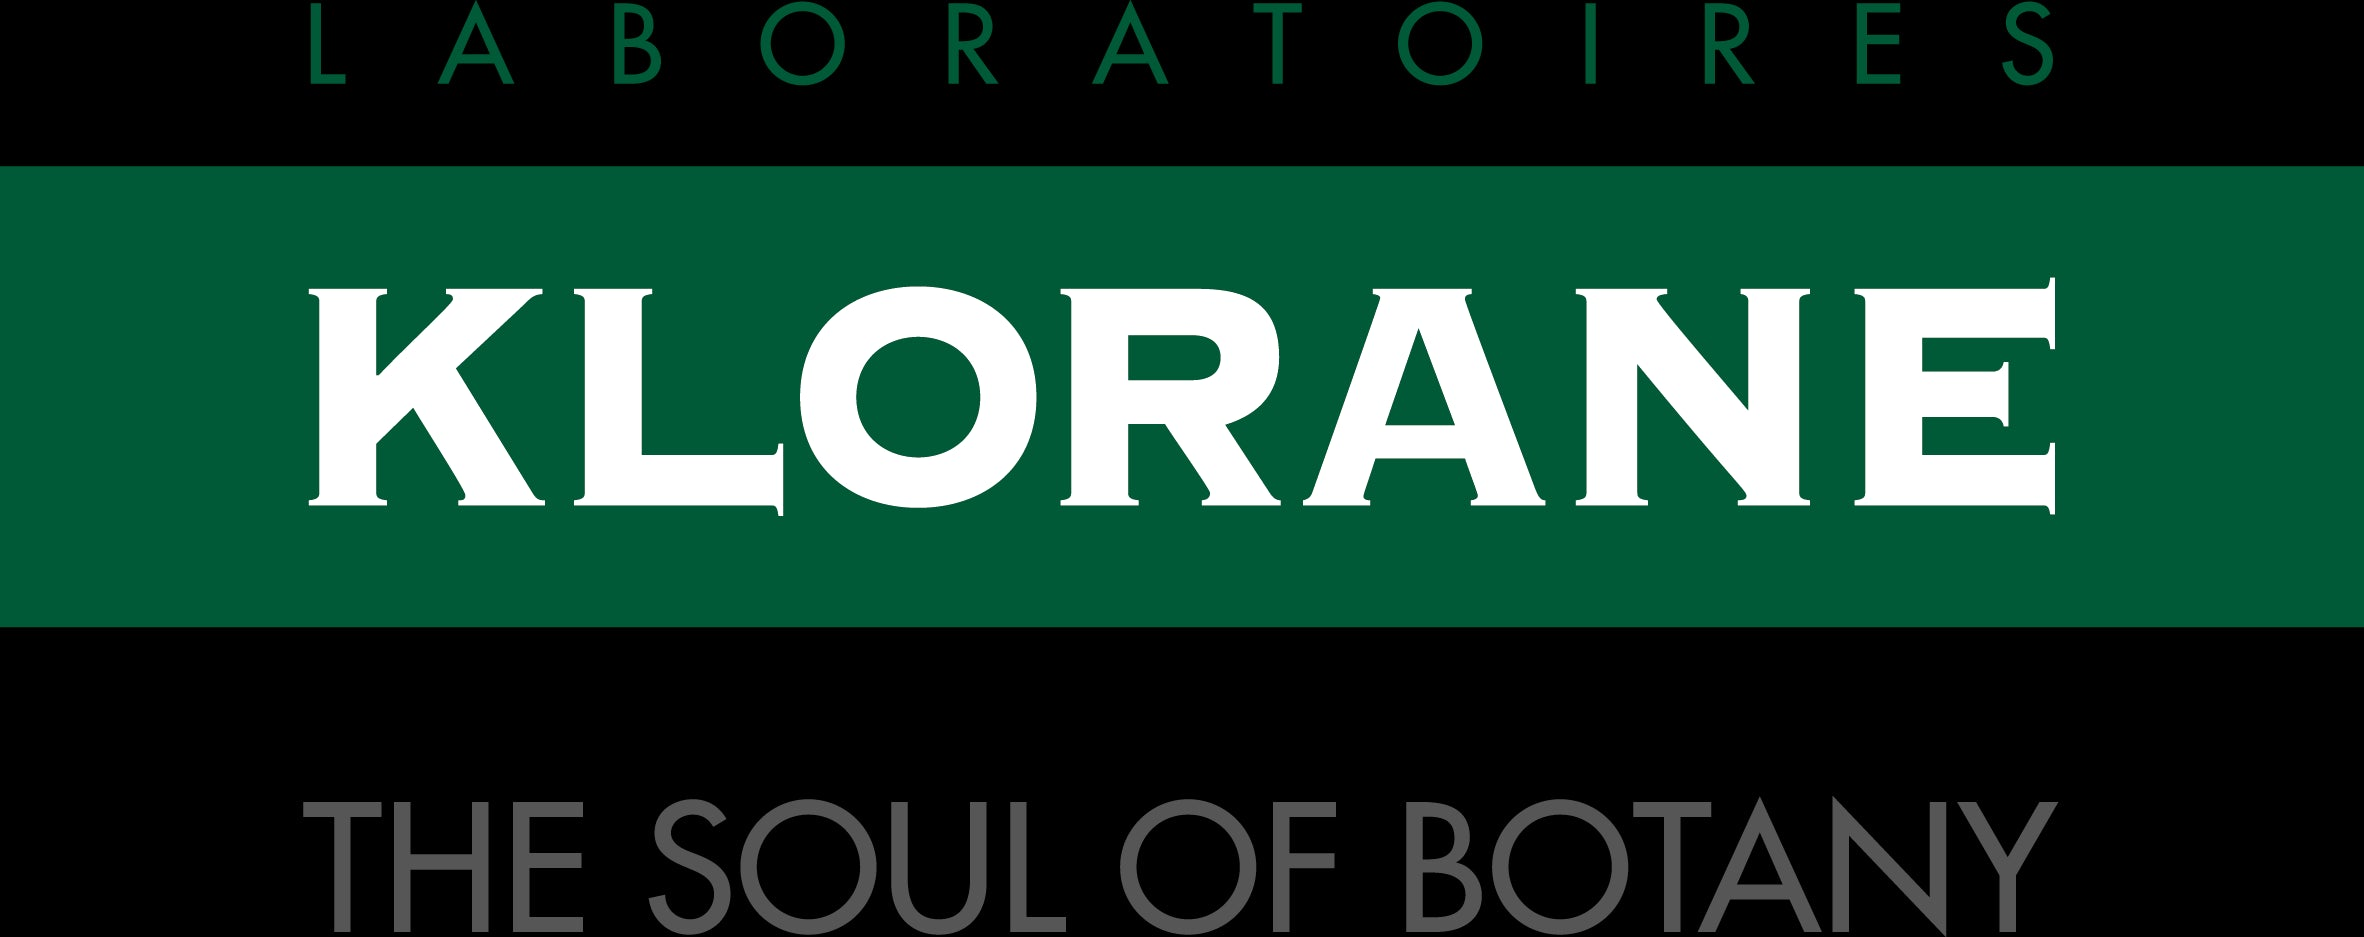 Klorane Laboratories